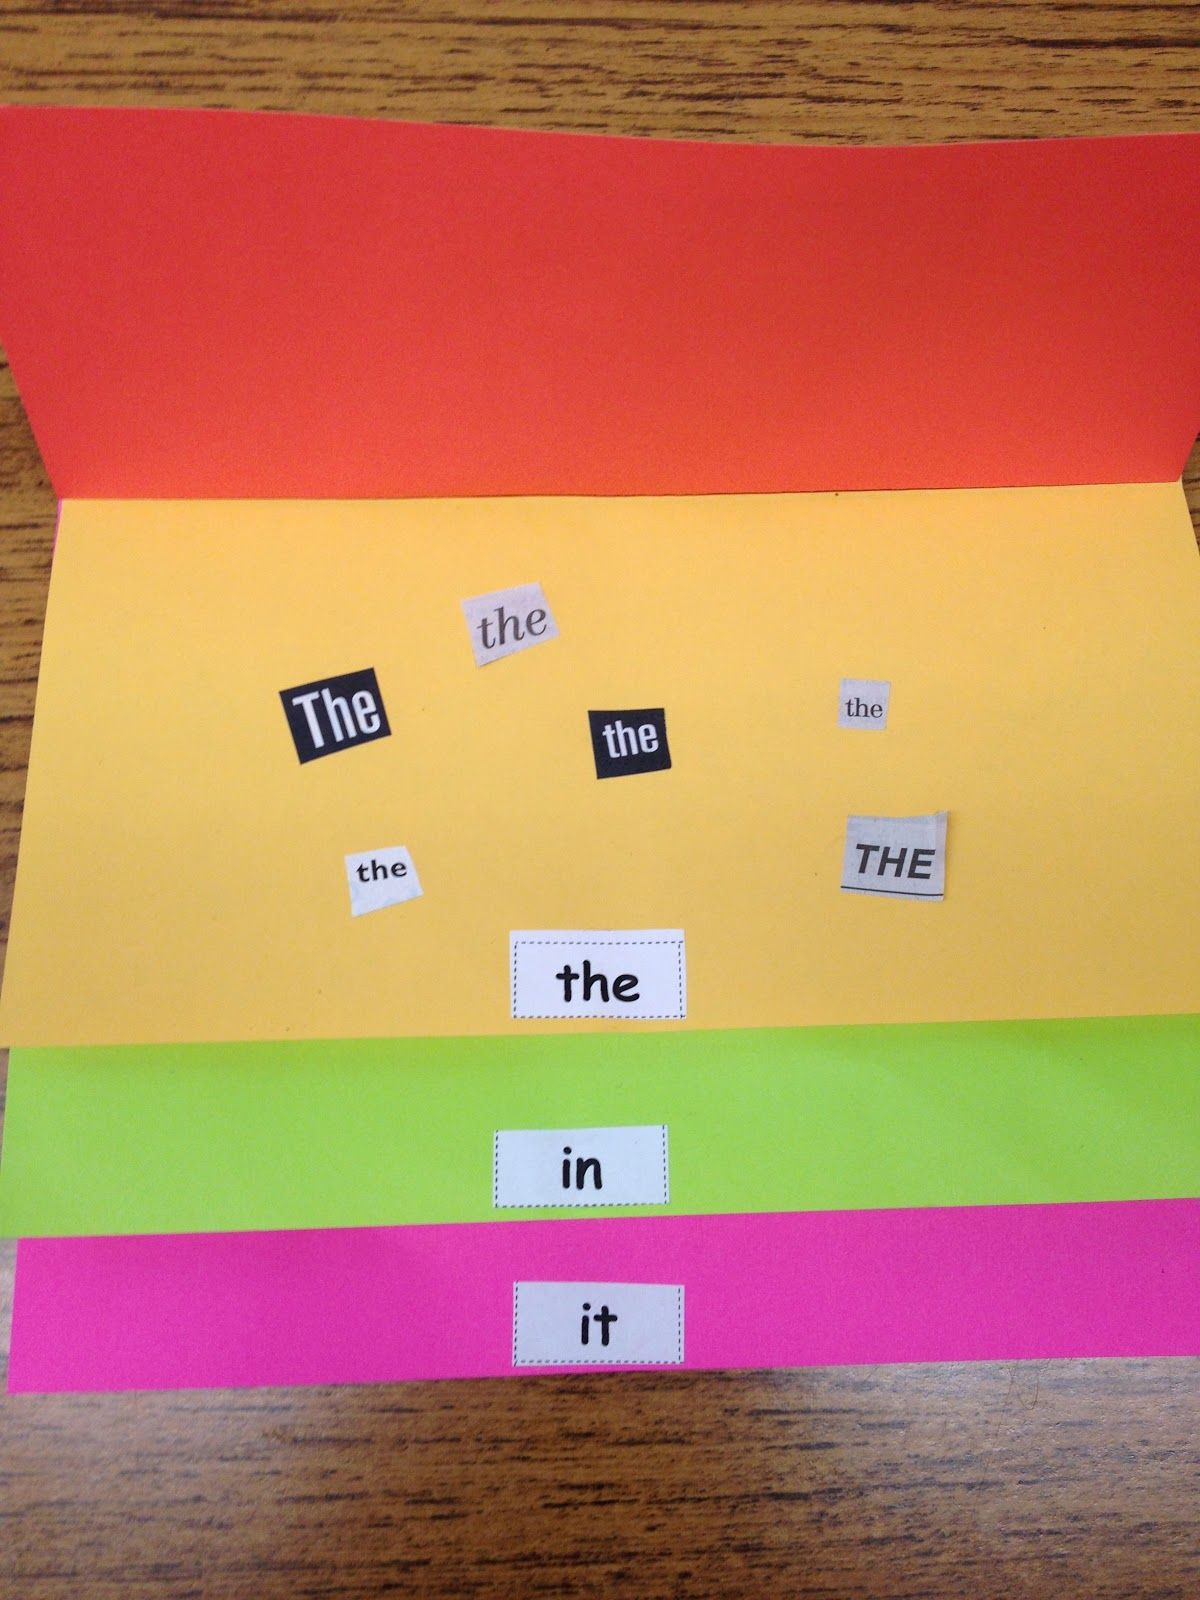 Literacy Without Worksheets Sight Words